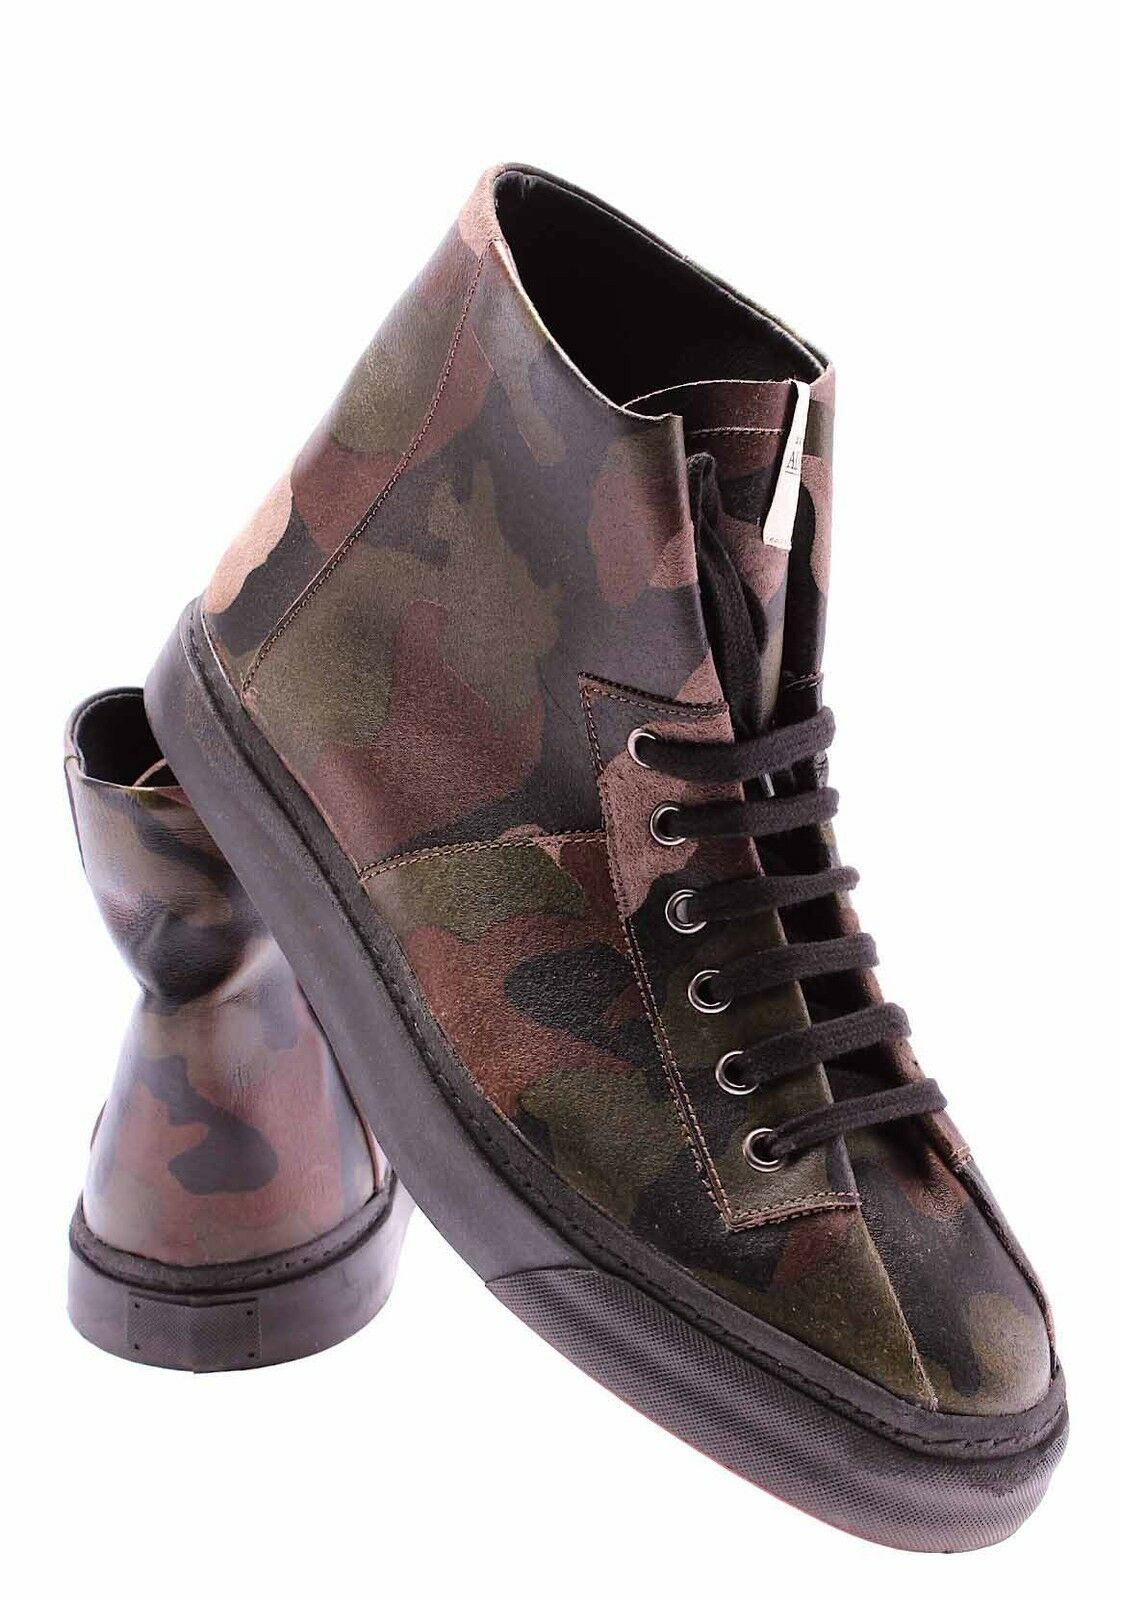 Men's Shoes Ankle Boots SERAFINI Advanced Illadelph Mimetic Italy Military Italy Mimetic New 67a860